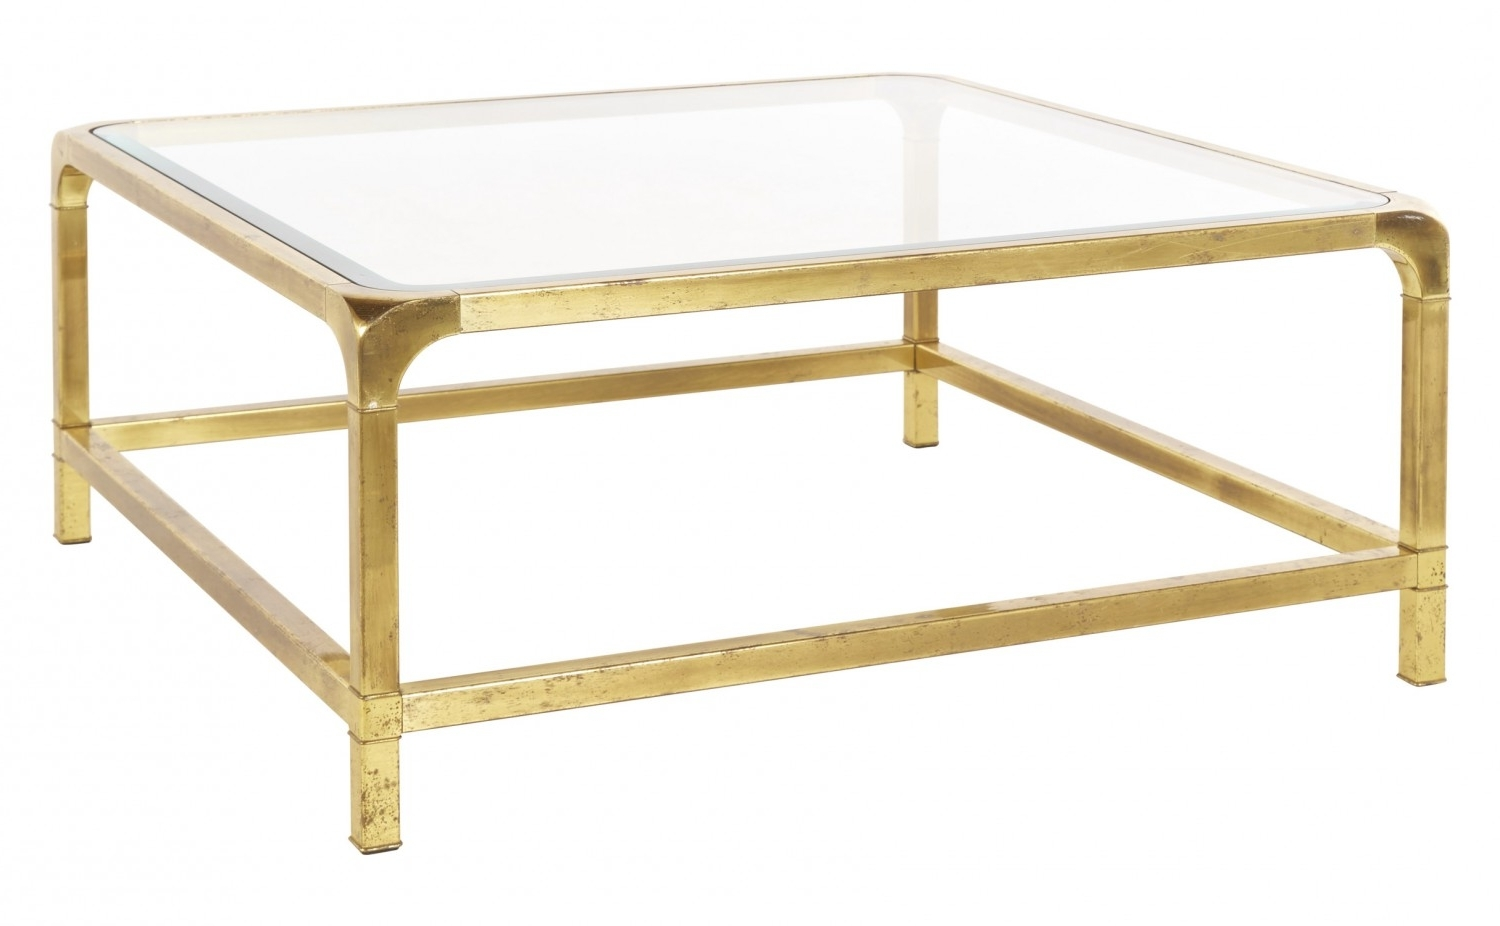 Jayson Home Intended For Most Recently Released Antique Brass Coffee Tables (View 9 of 20)